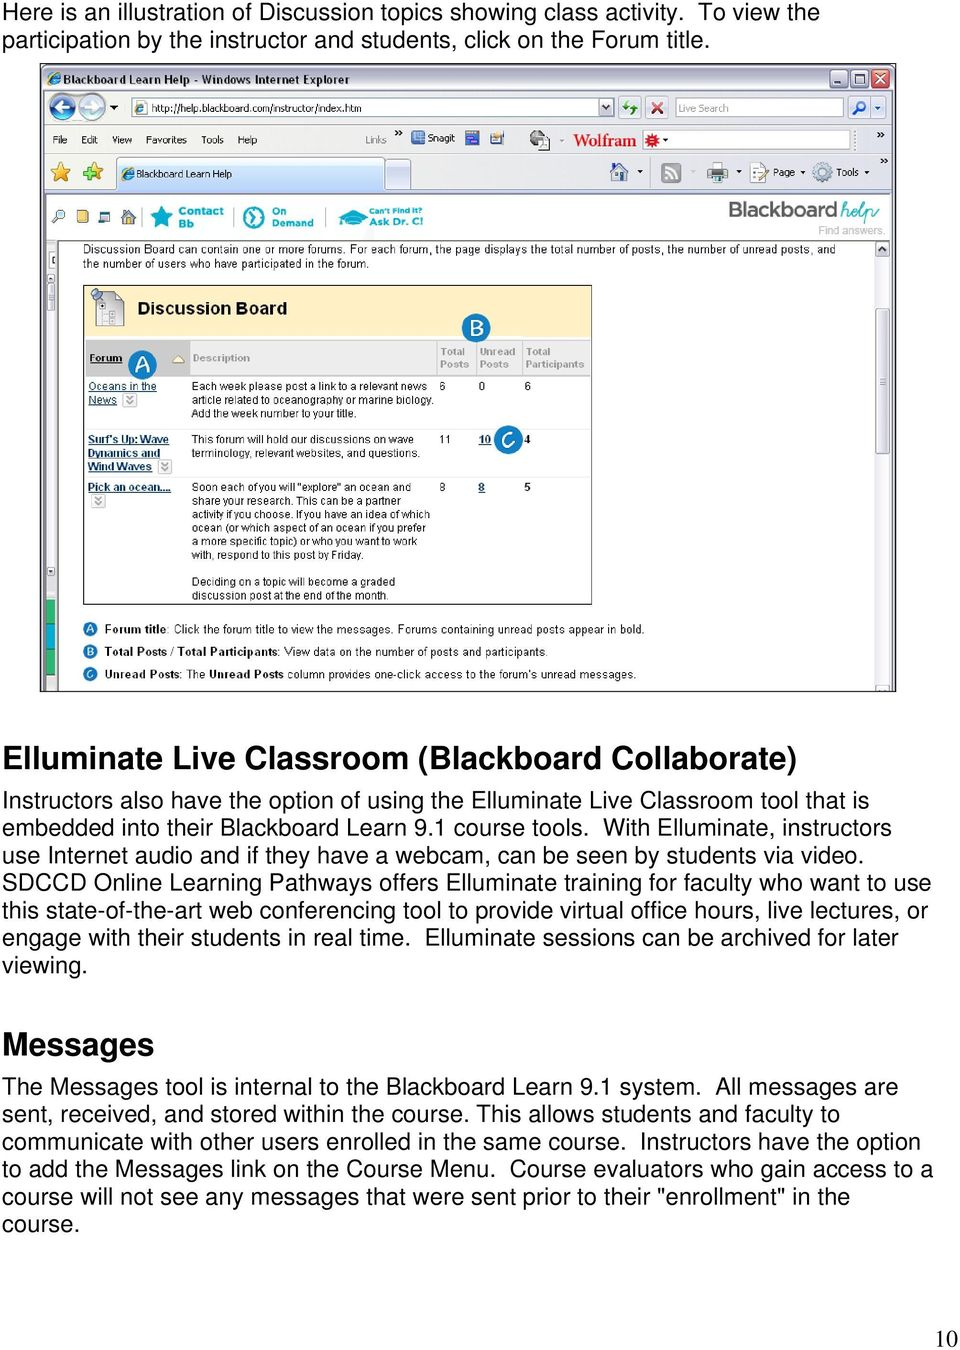 With Elluminate, instructors use Internet audio and if they have a webcam, can be seen by students via video.